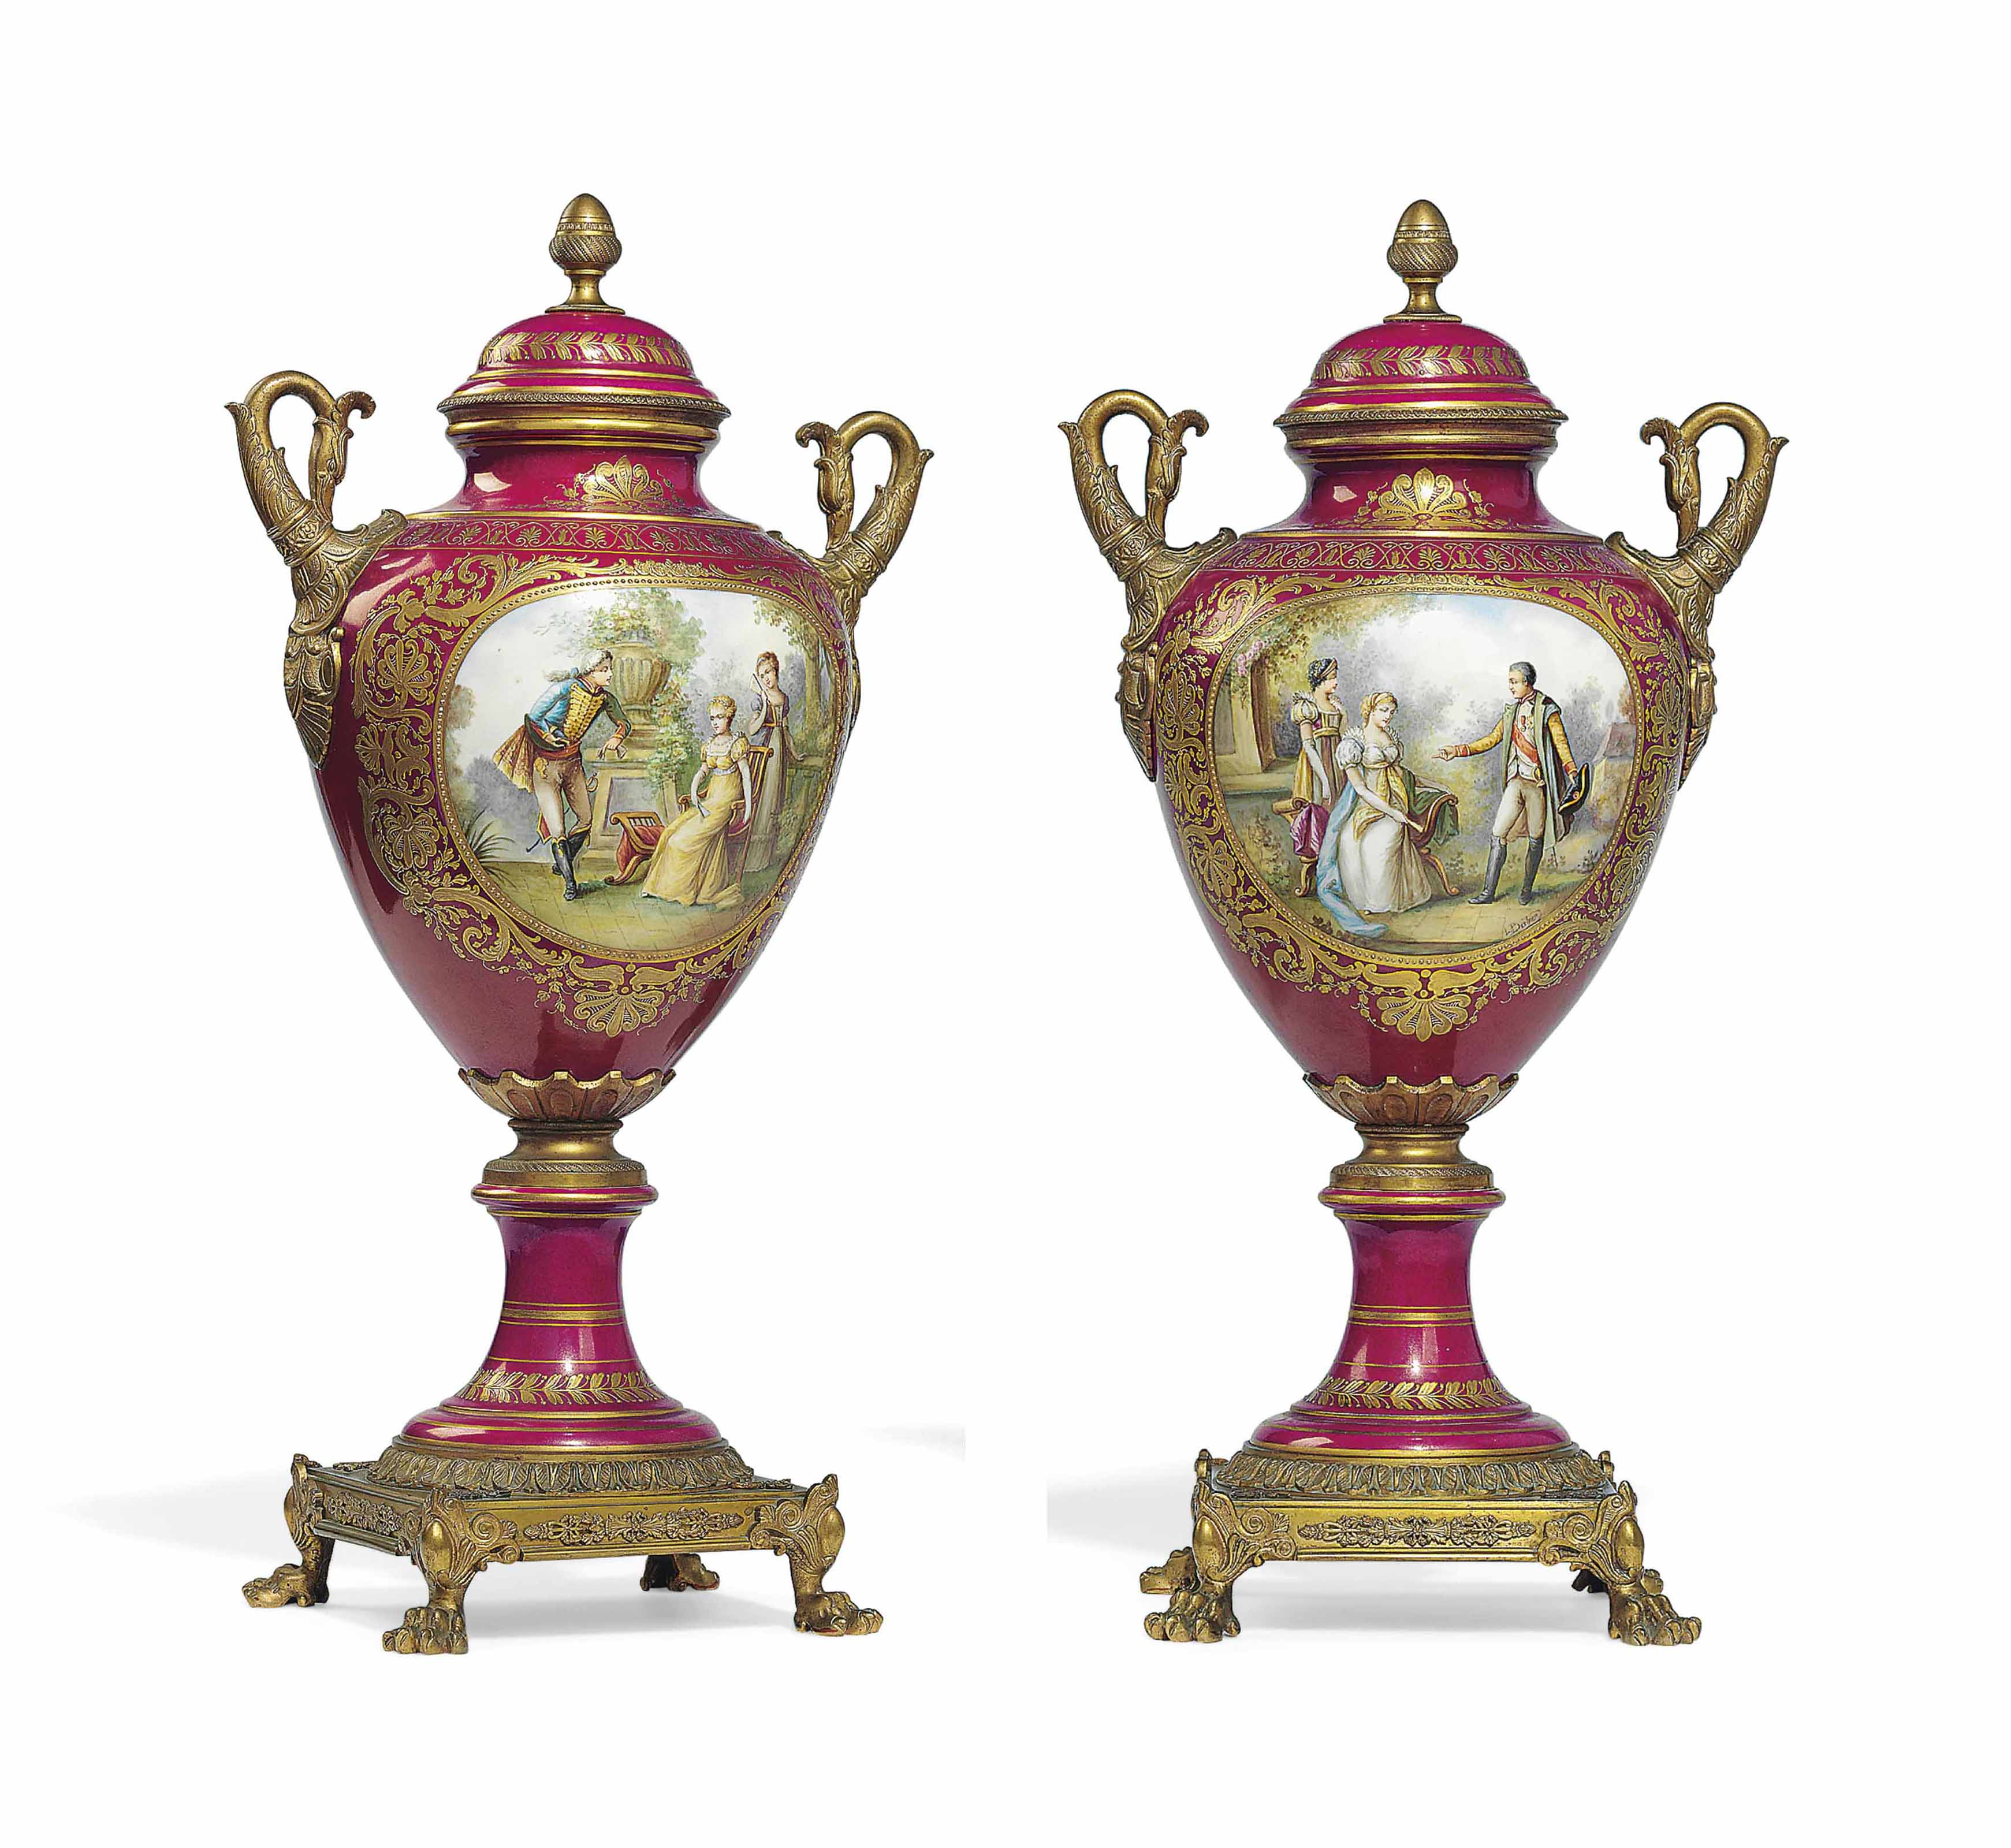 A PAIR OF ORMOLU-MOUNTED SEVRES-STYLE PORCELAIN PINK